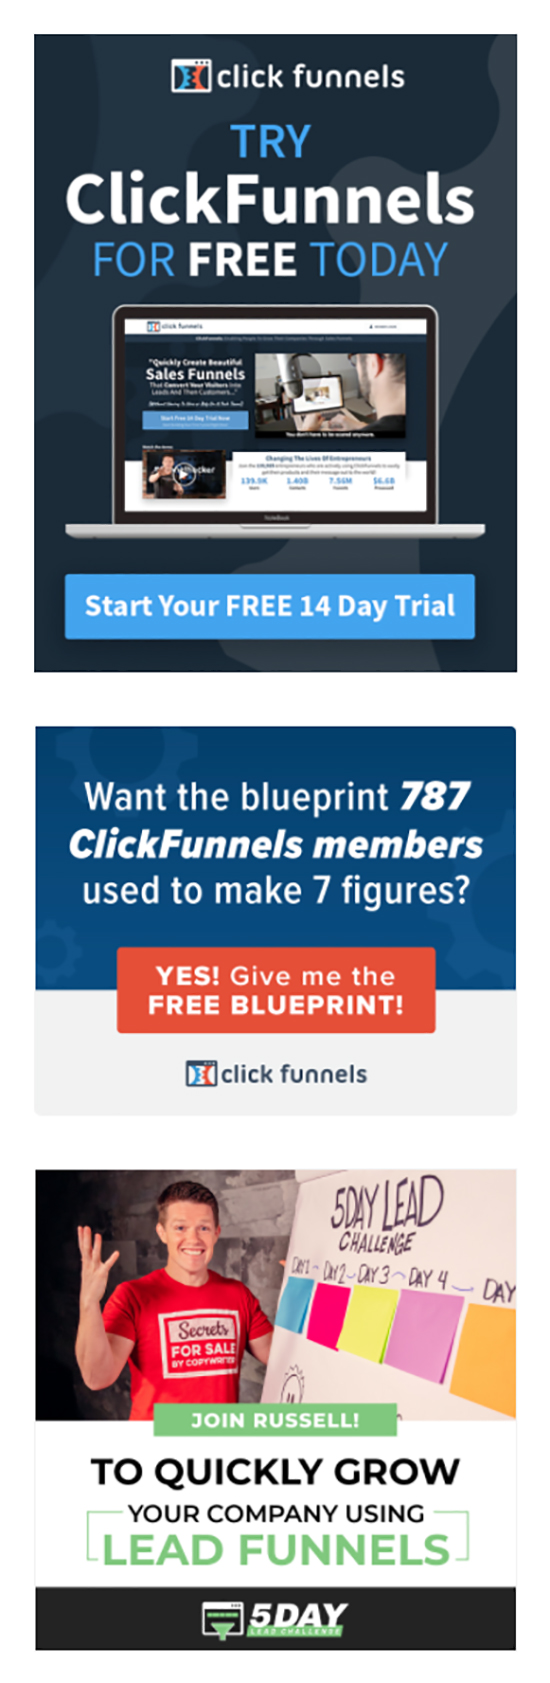 Try ClickFunnels for free today call-to-action.